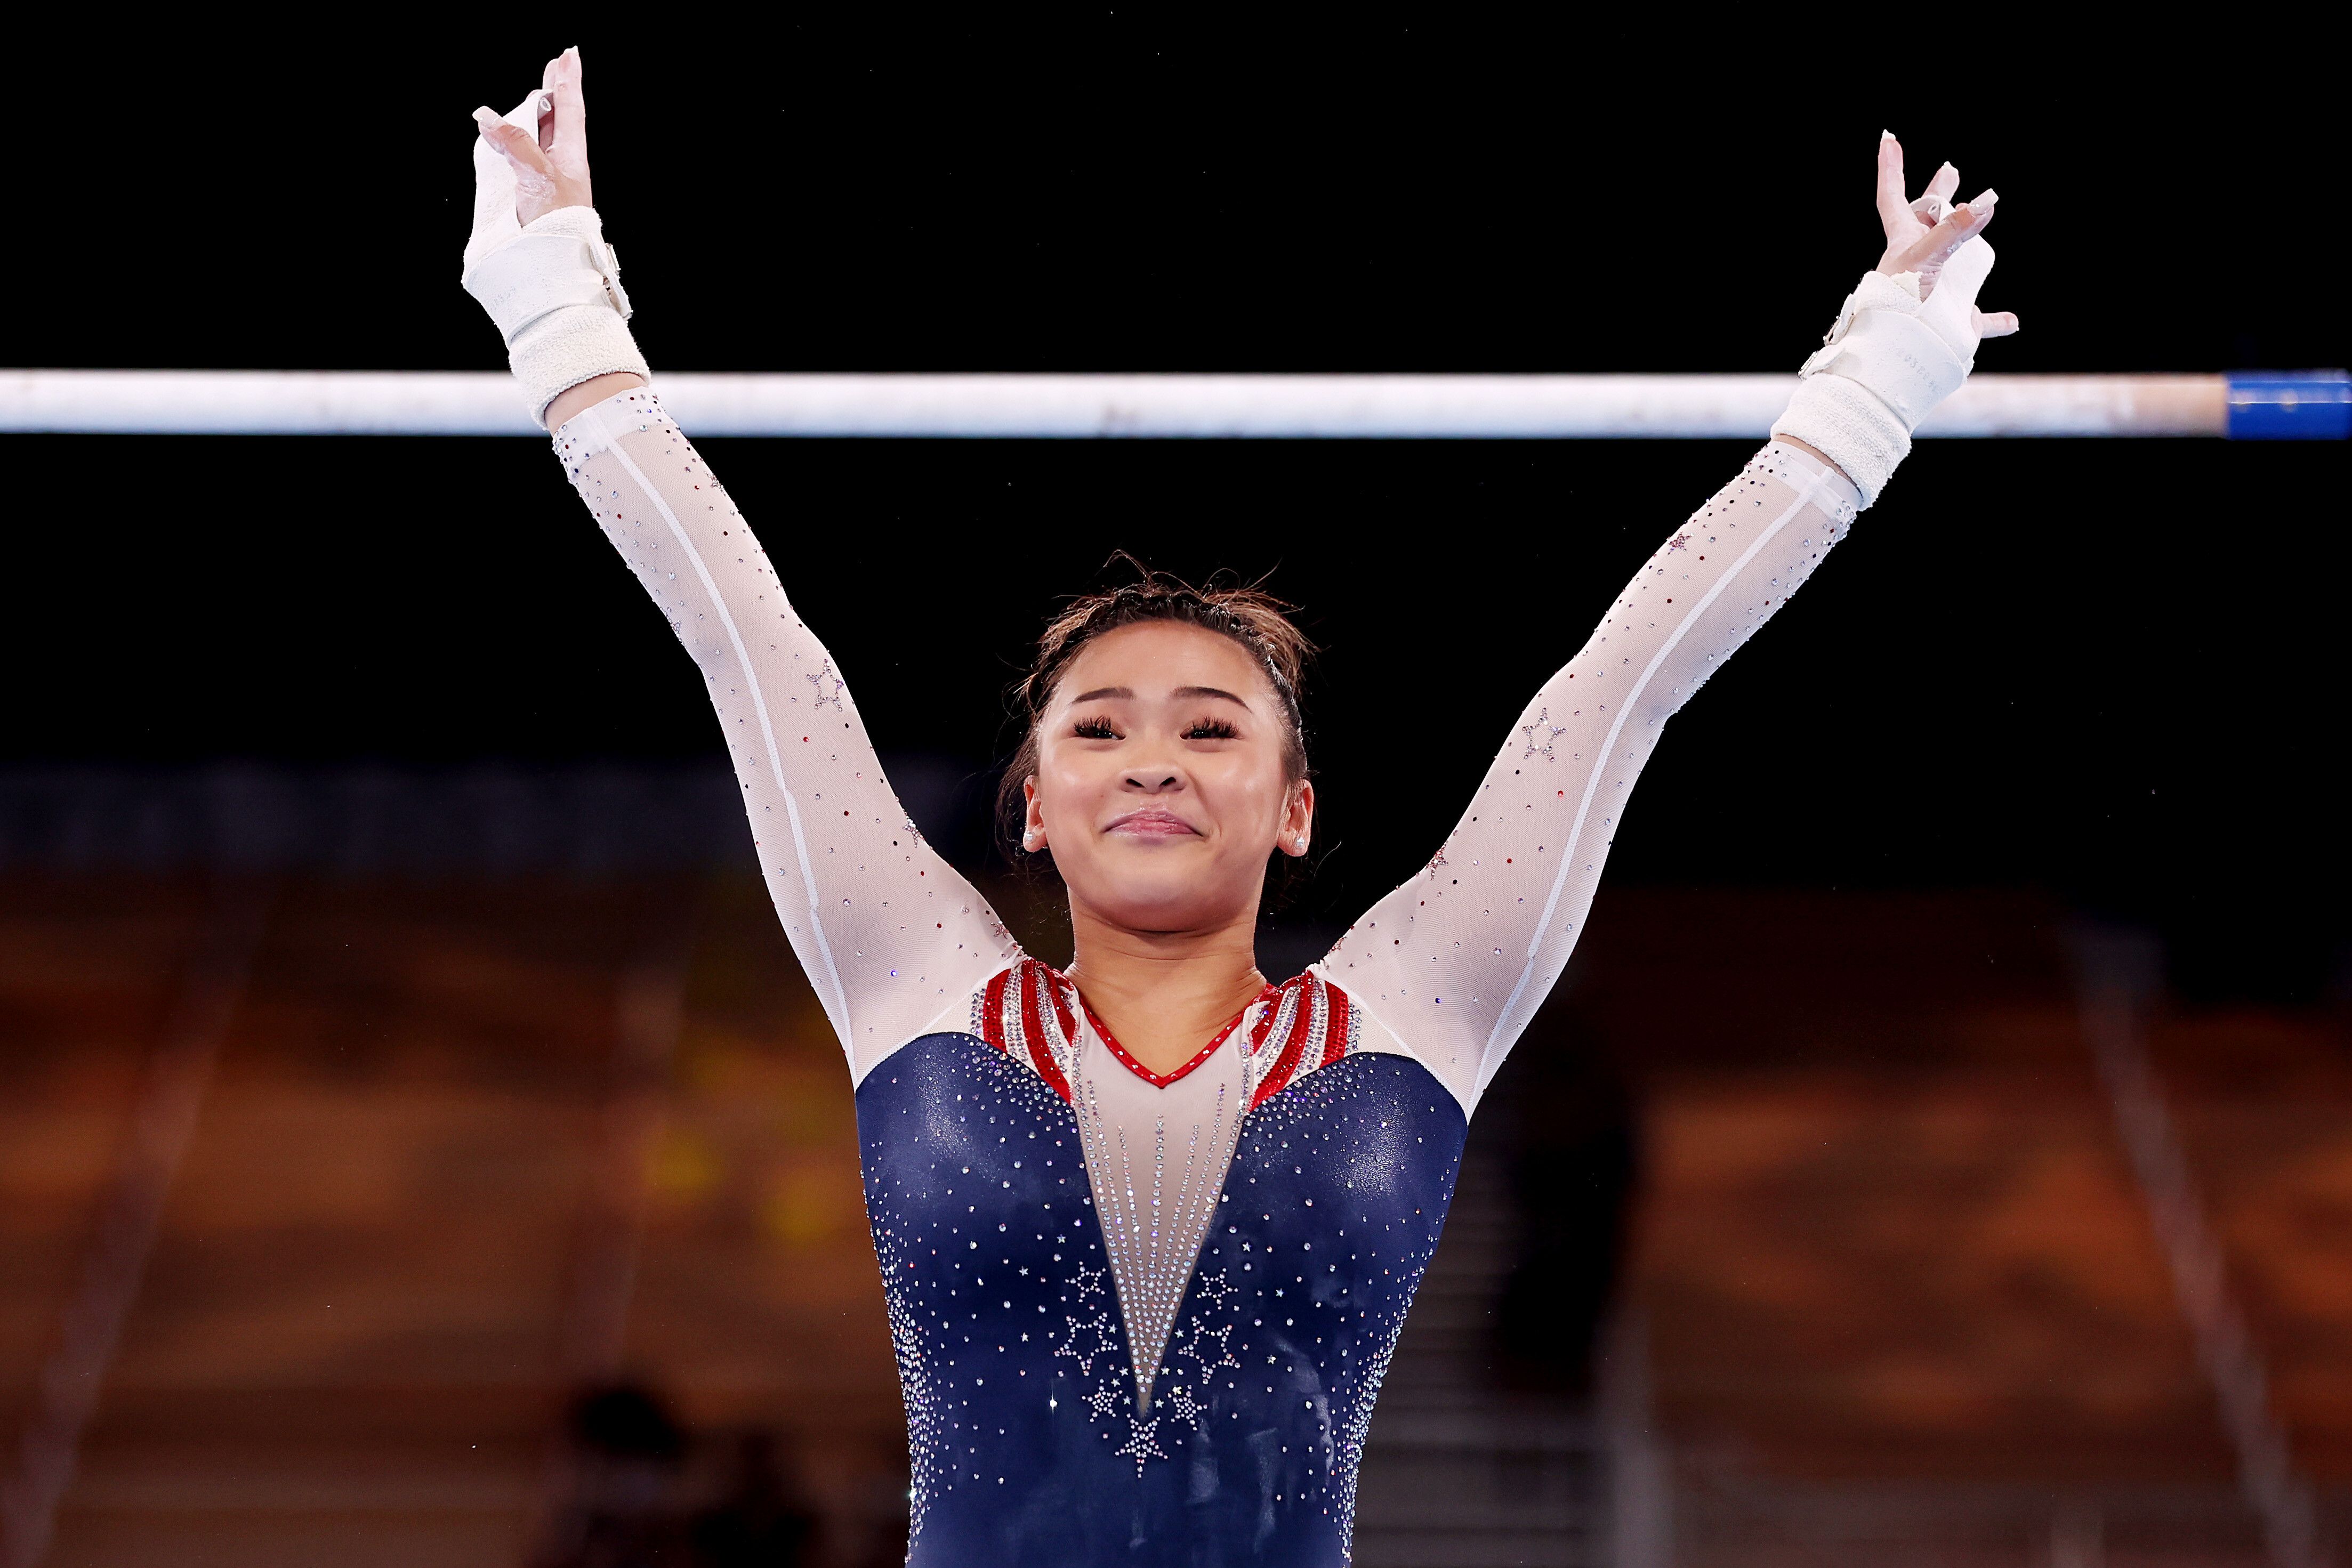 'I didn't think I would ever be here,' says Sunisa Lee after winning 'surreal' all-around gymnastics gold at the Tokyo Olympics